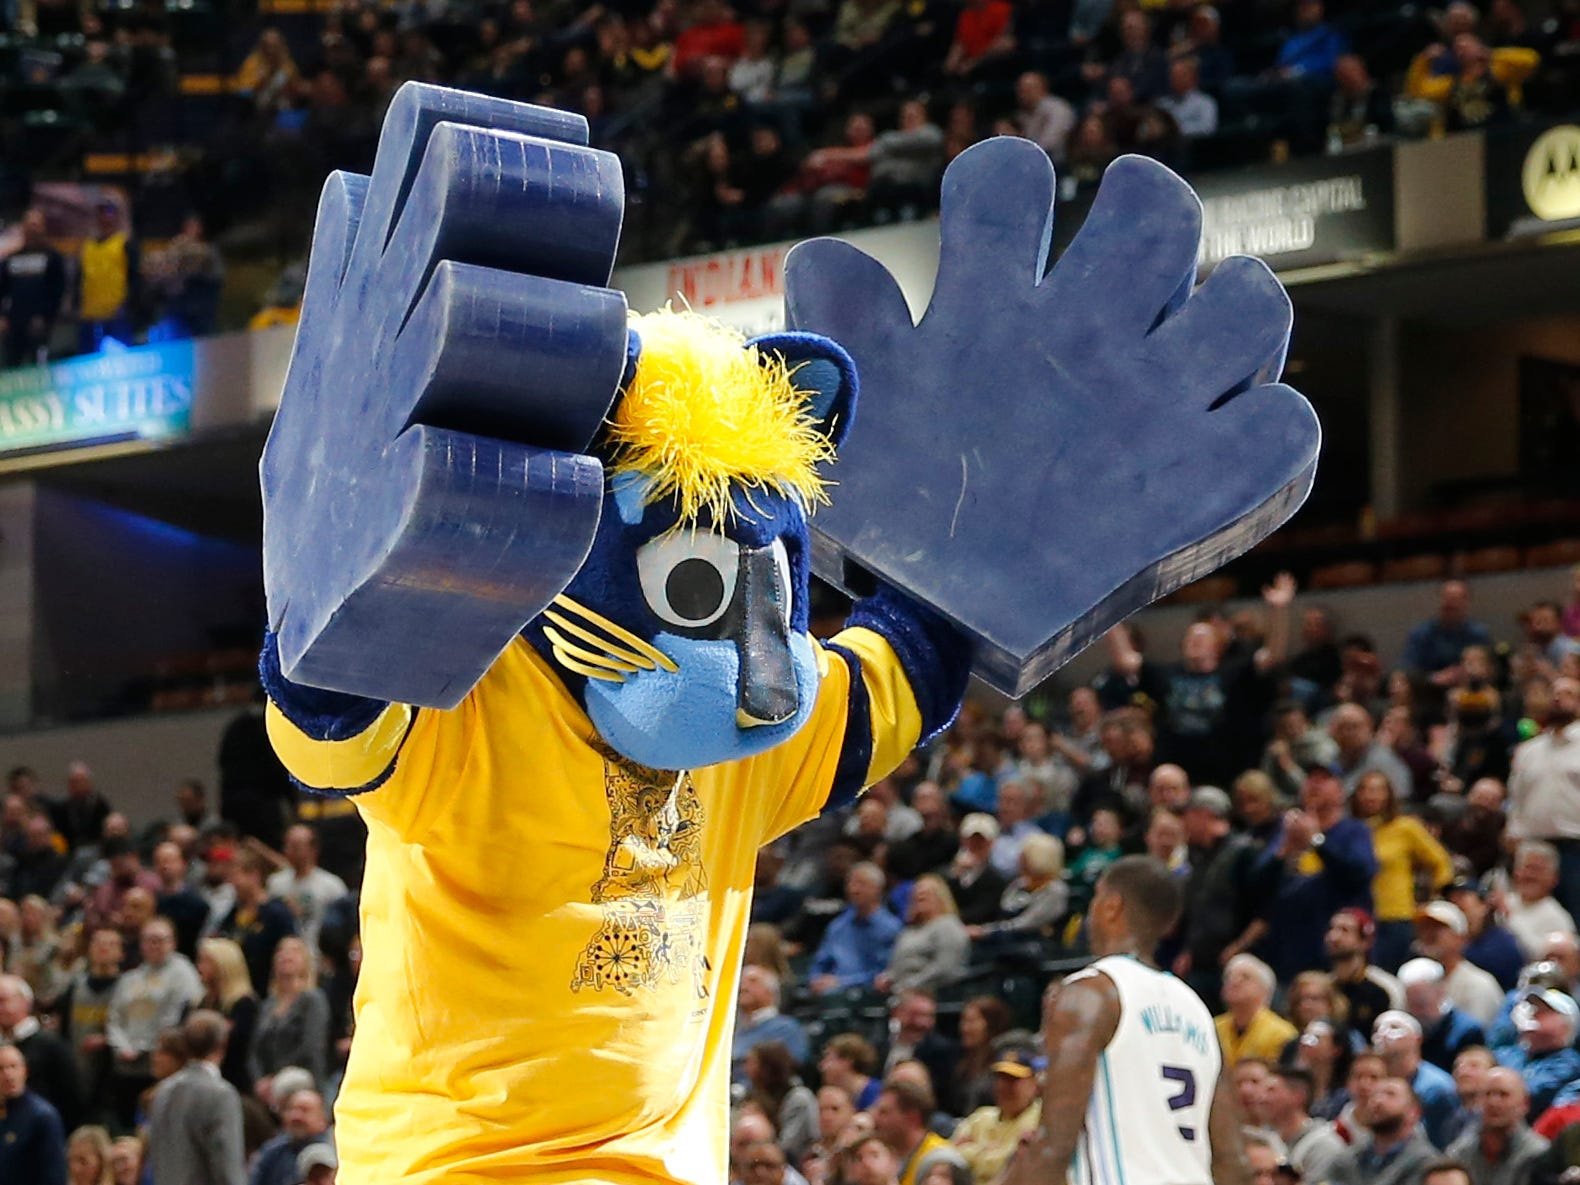 Feb 11, 2019; Indianapolis, IN, USA; Indiana Pacers mascot Boomer performs a cheer in a game against the Charlotte Hornets during the fourth quarter at Bankers Life Fieldhouse.